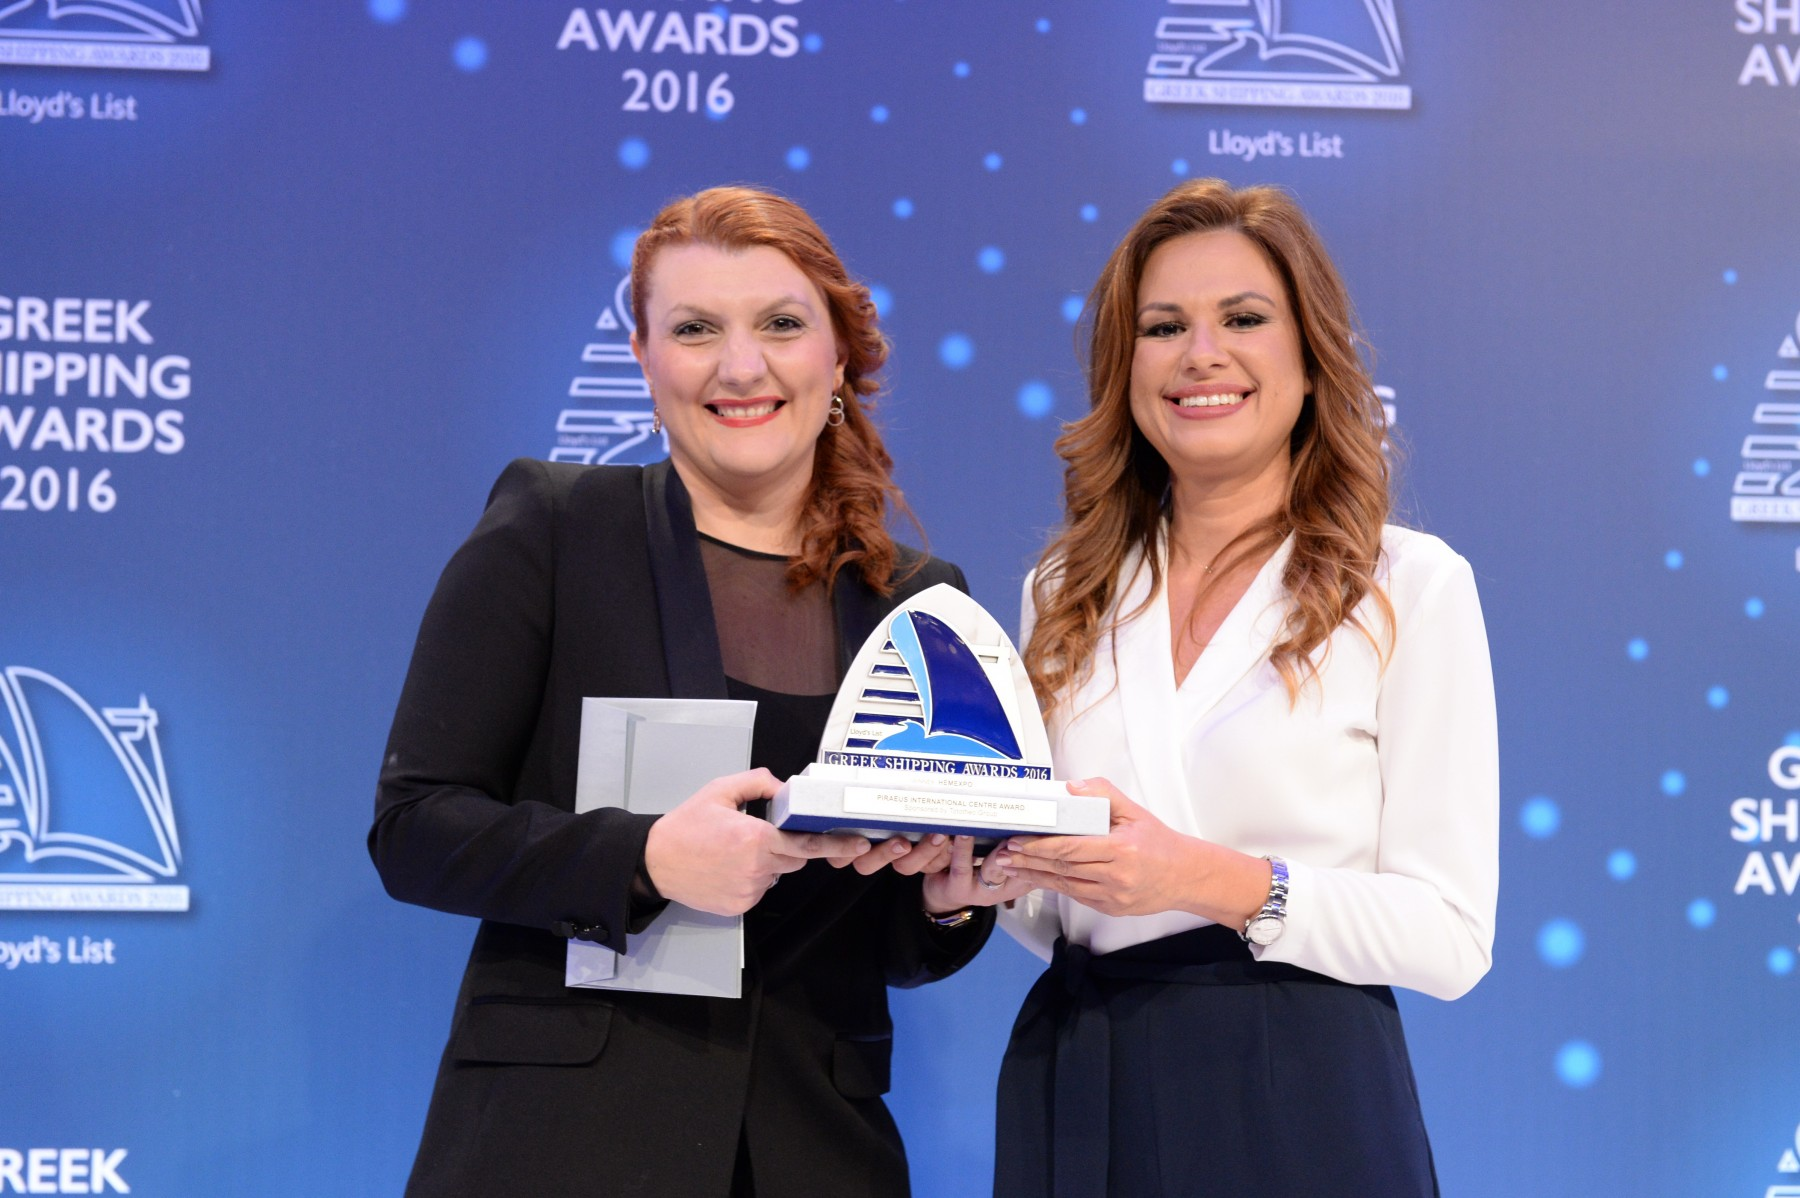 Ms. Despina Panayiotou Theodossiou of sponsor Tototheo Group presenting the Piraeus International Centre Award to Eleni Polychronopoulou of HEMEXPO.